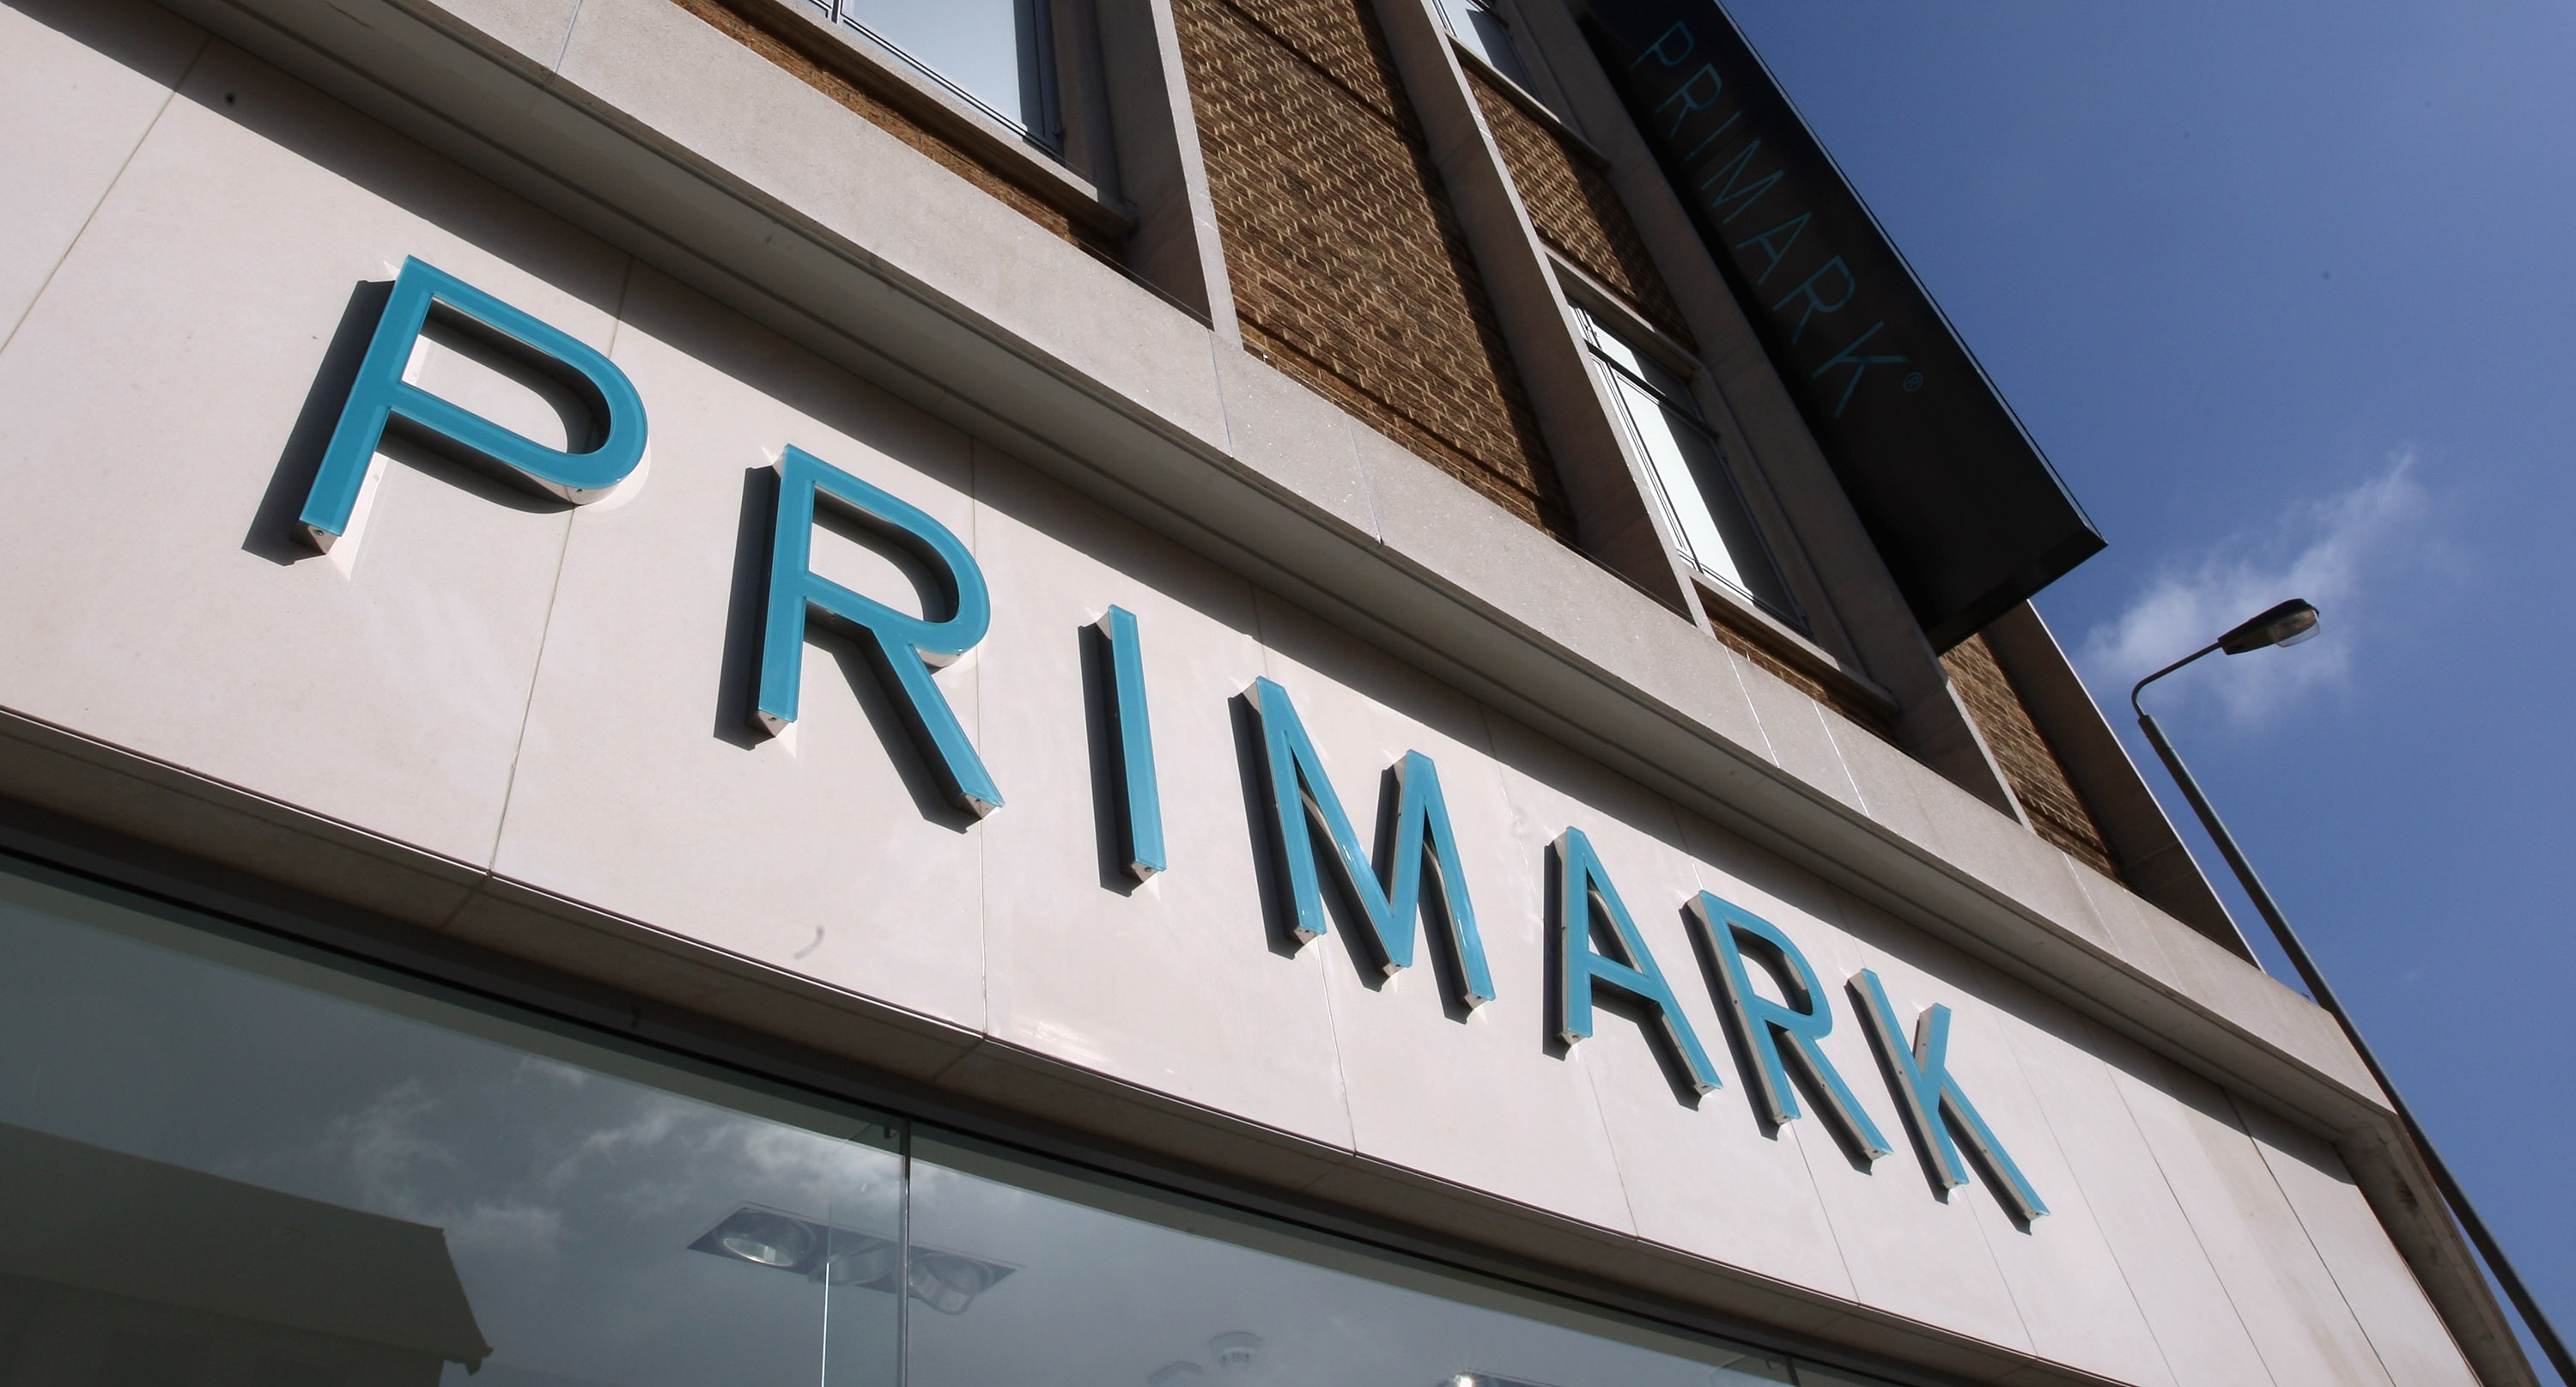 Primark, arriva in Italia la catena di negozi low cost